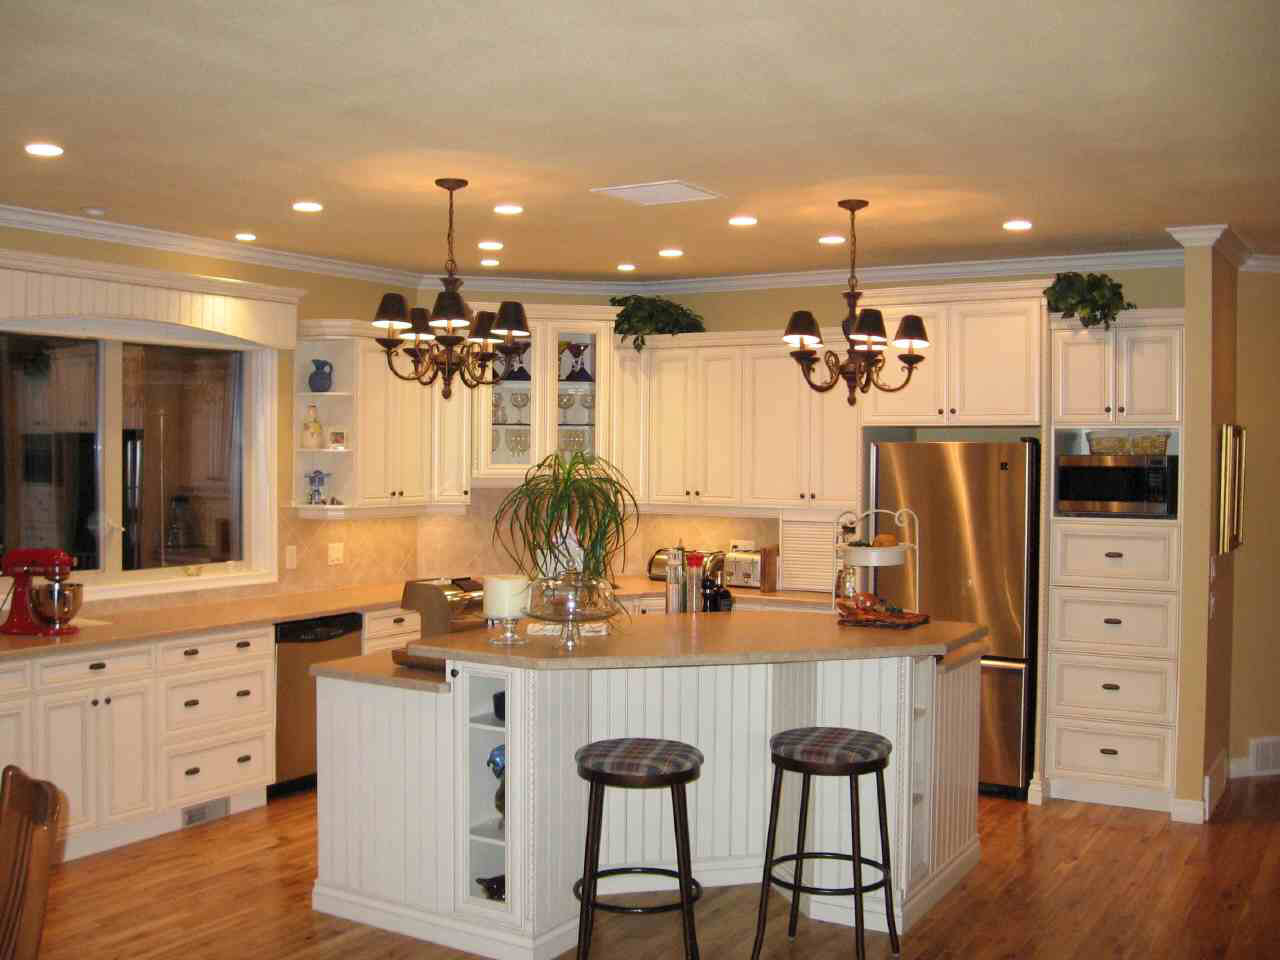 Peartreedesigns Beautiful Modern Kitchen Interiors Photos Images